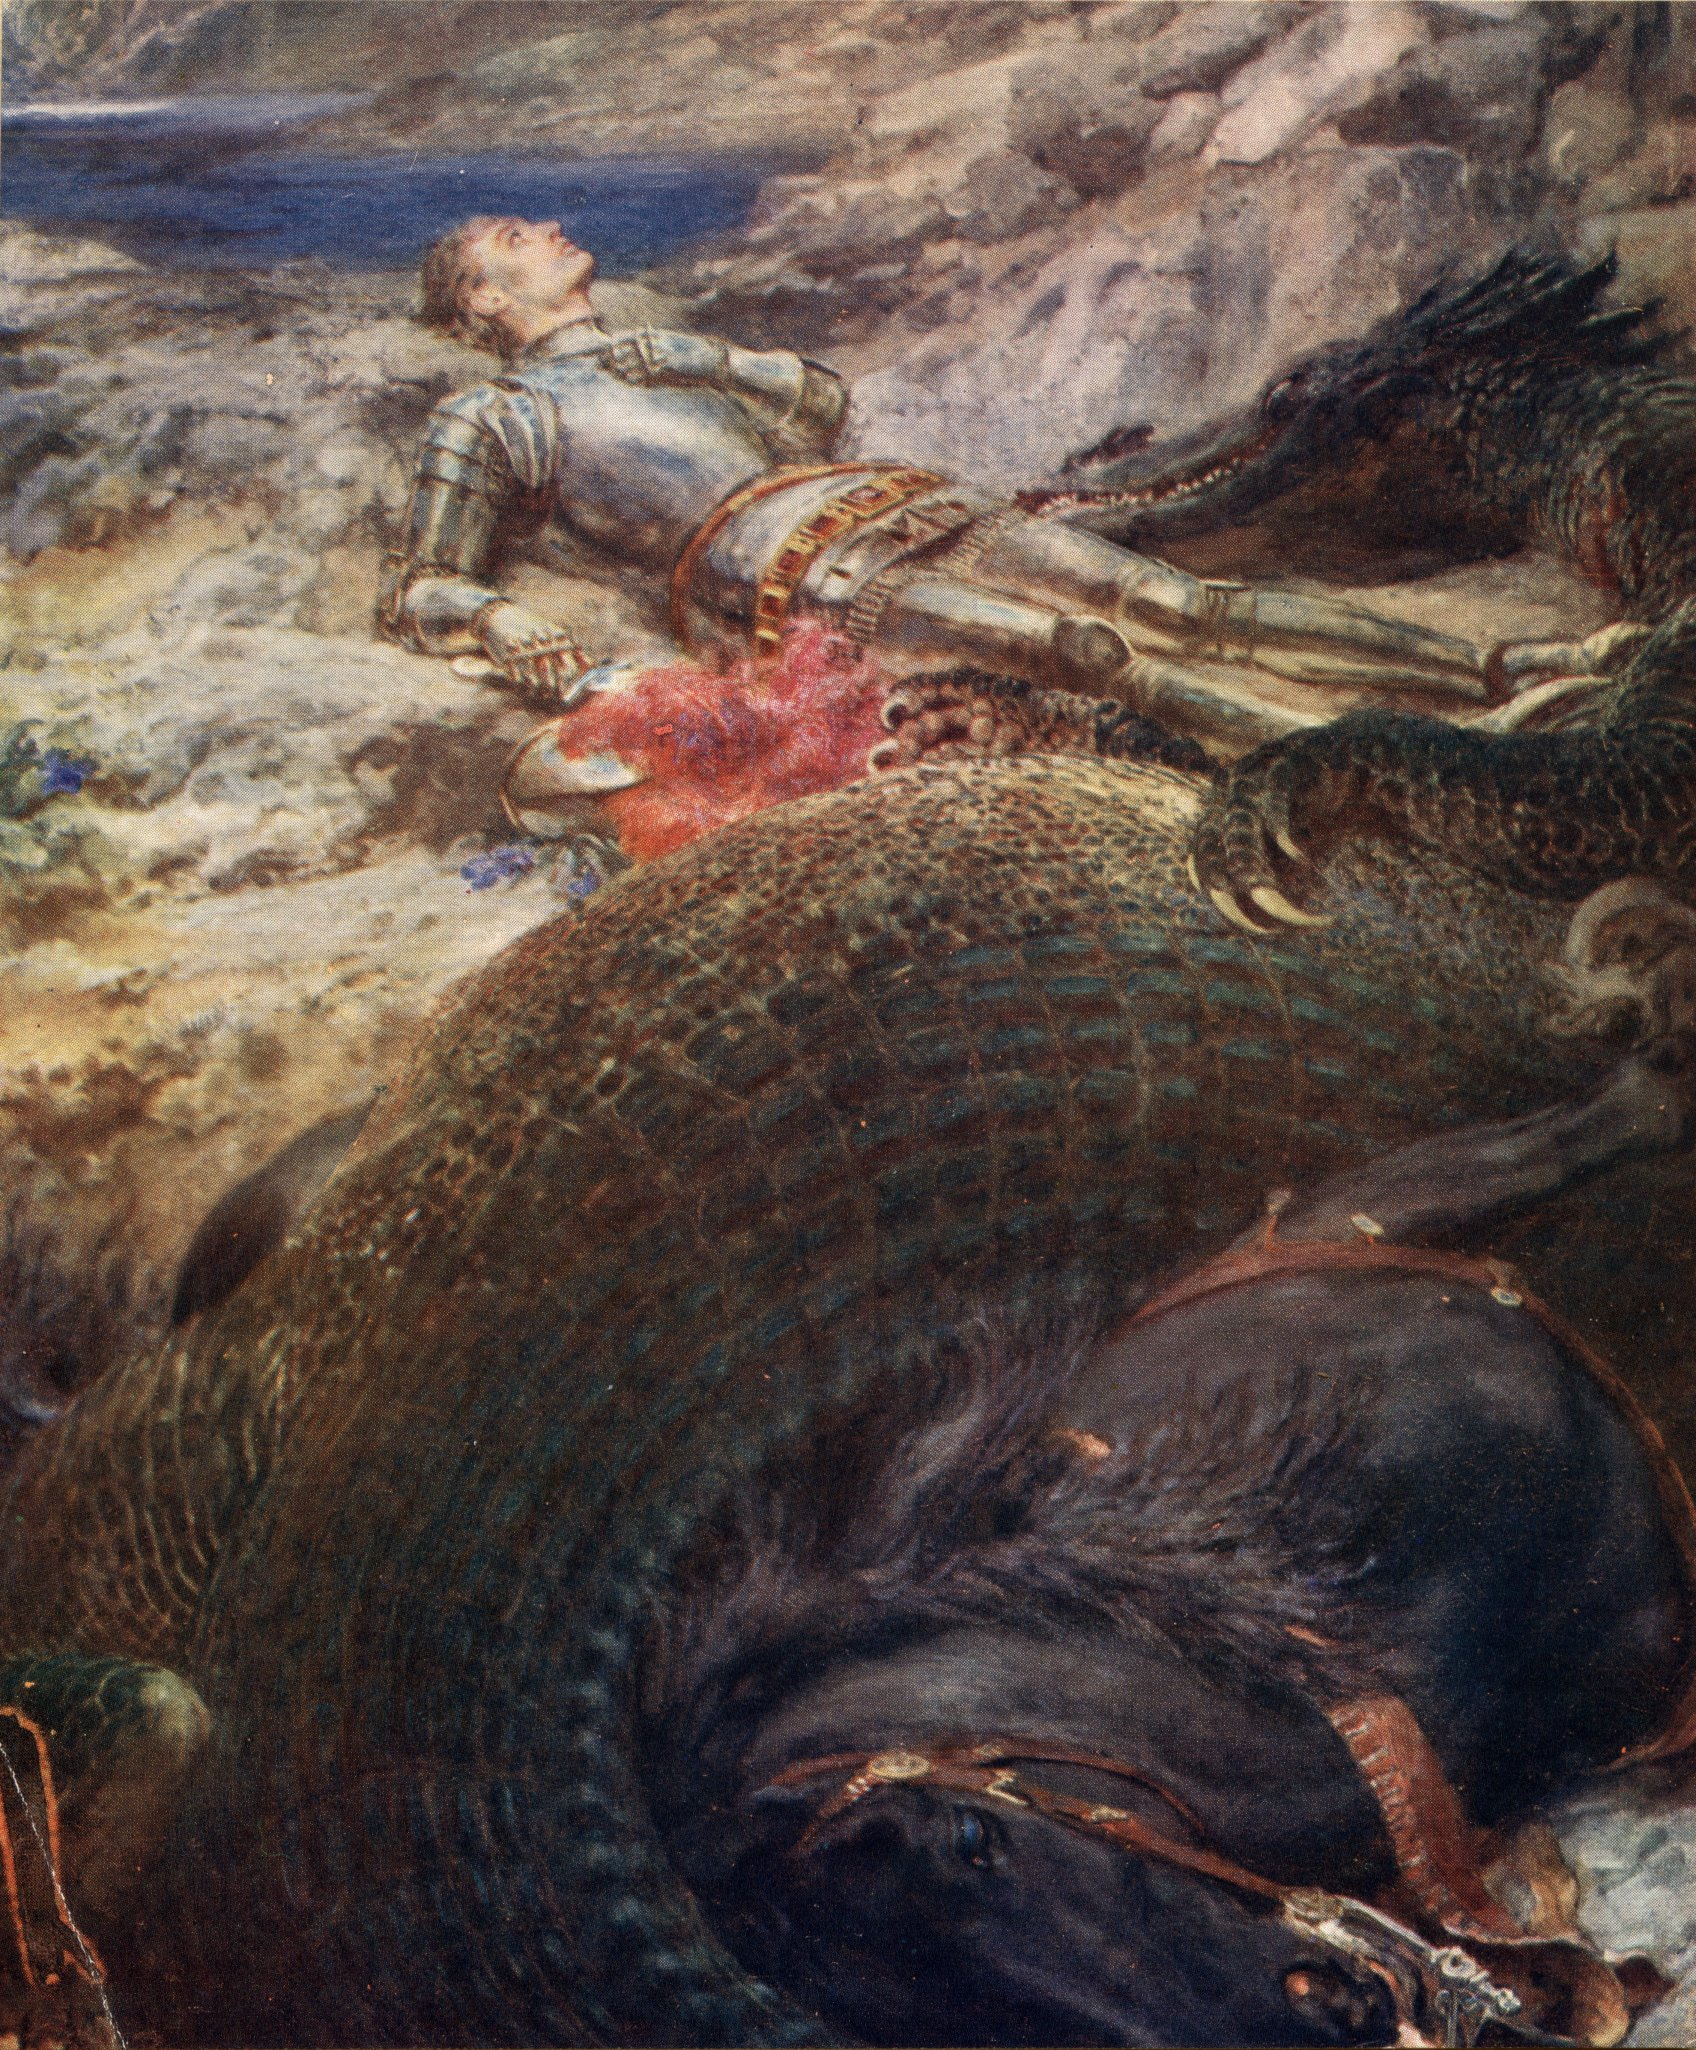 https://i2.wp.com/upload.wikimedia.org/wikipedia/commons/a/af/St._George_and_the_Dragon_-_Briton_Riviere.jpg